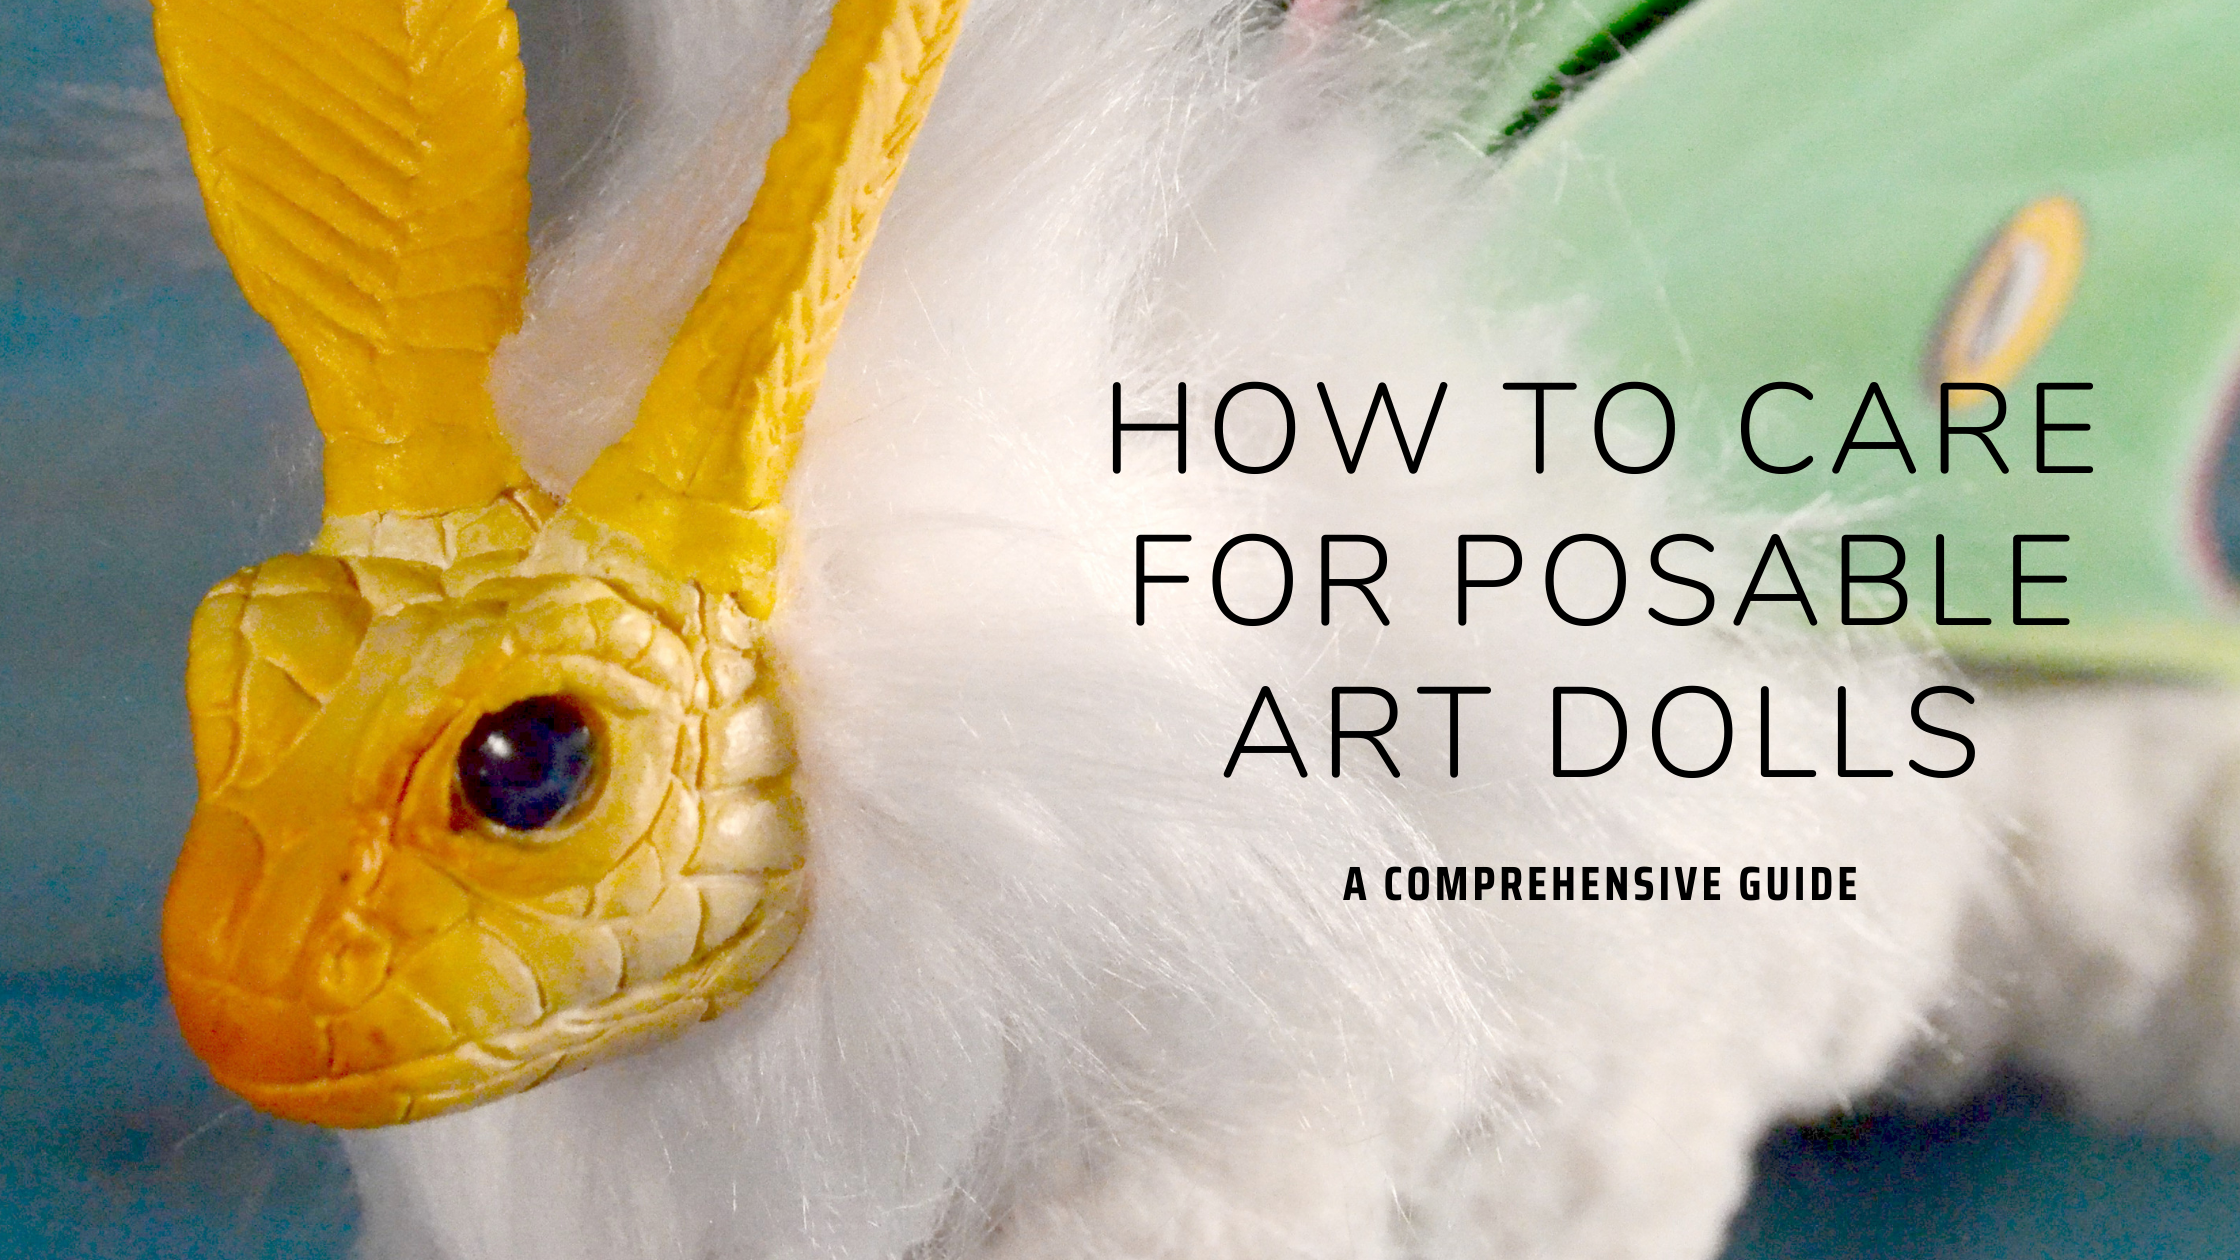 How to care for Posable Art Dolls